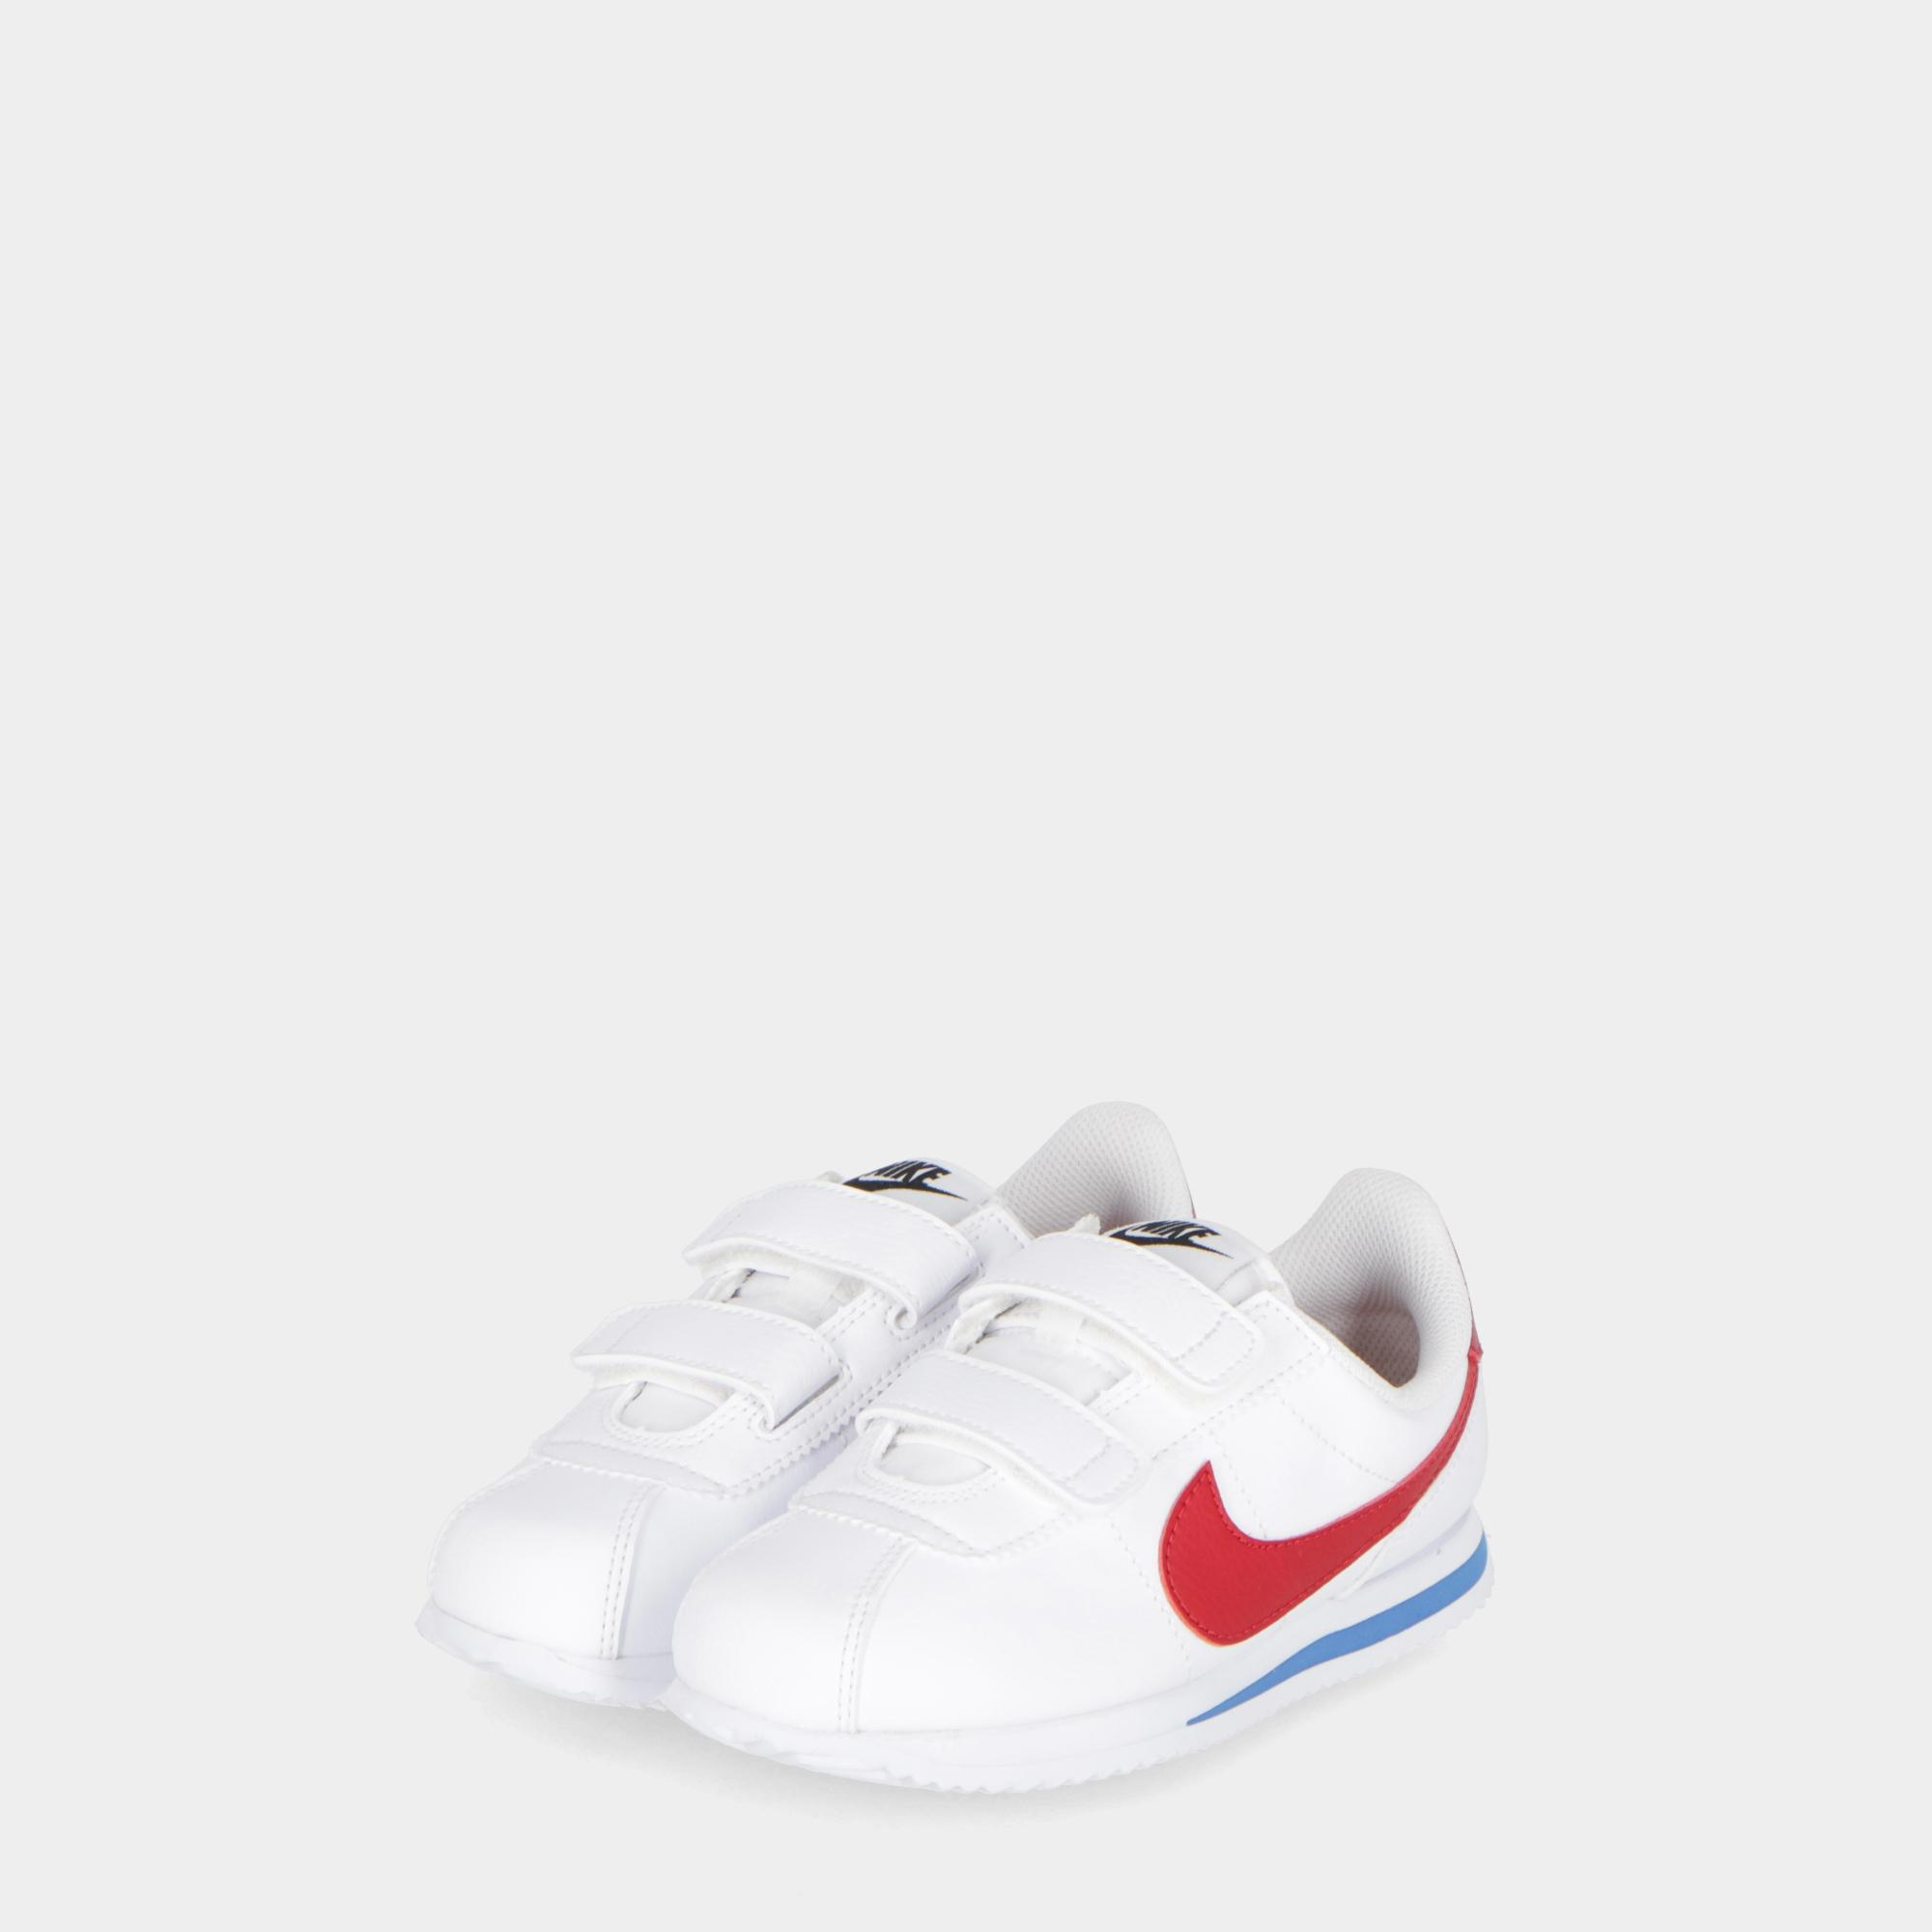 new products 67e4b d0cd6 Nike Cortez Basic Sl (psv) - Kids White red royal